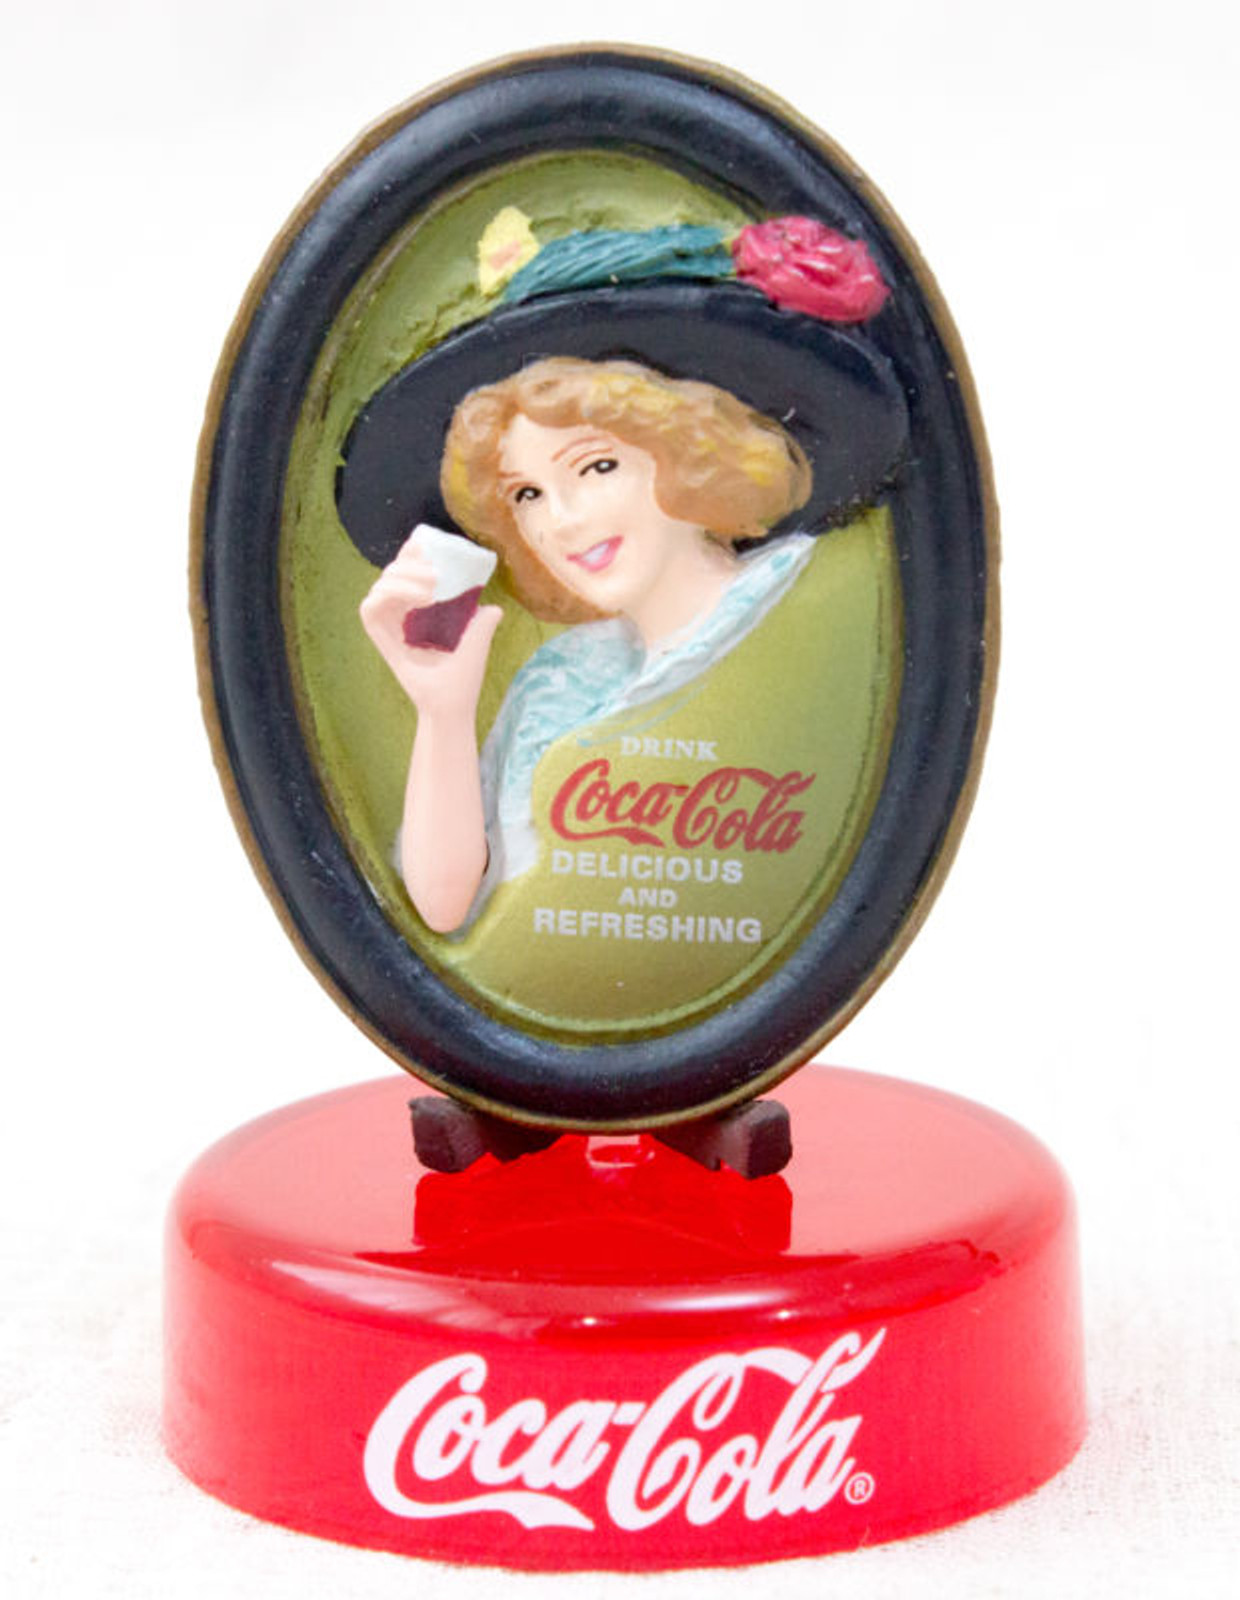 Coca-Cola Graffiti A Woman in The Change Tray Toy Miniature Figure Kaiyodo JAPAN